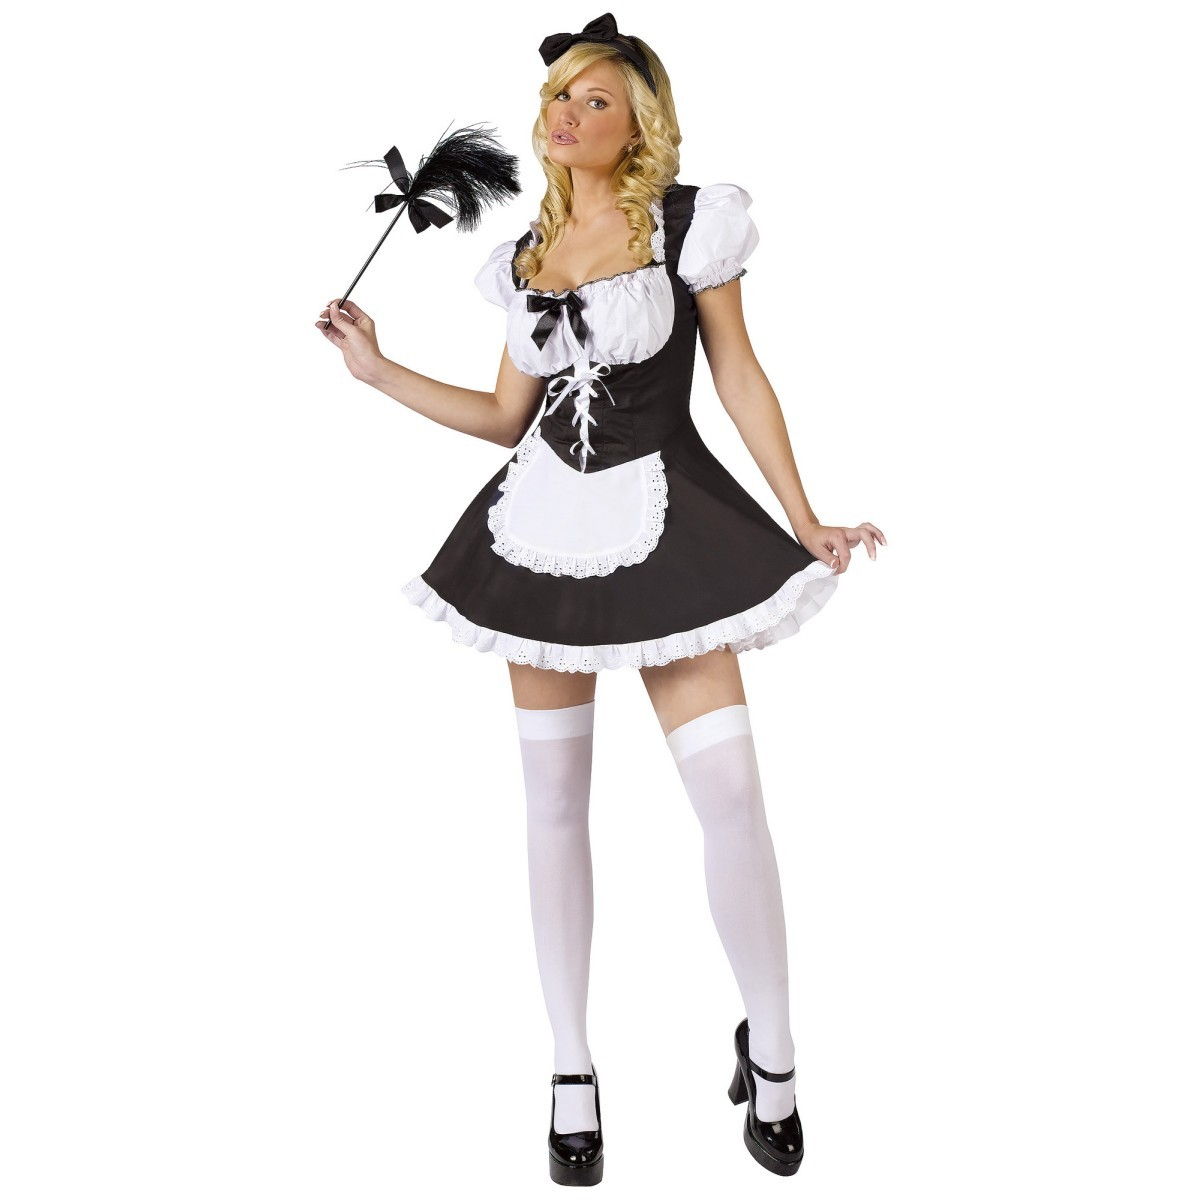 French maids Simple Background